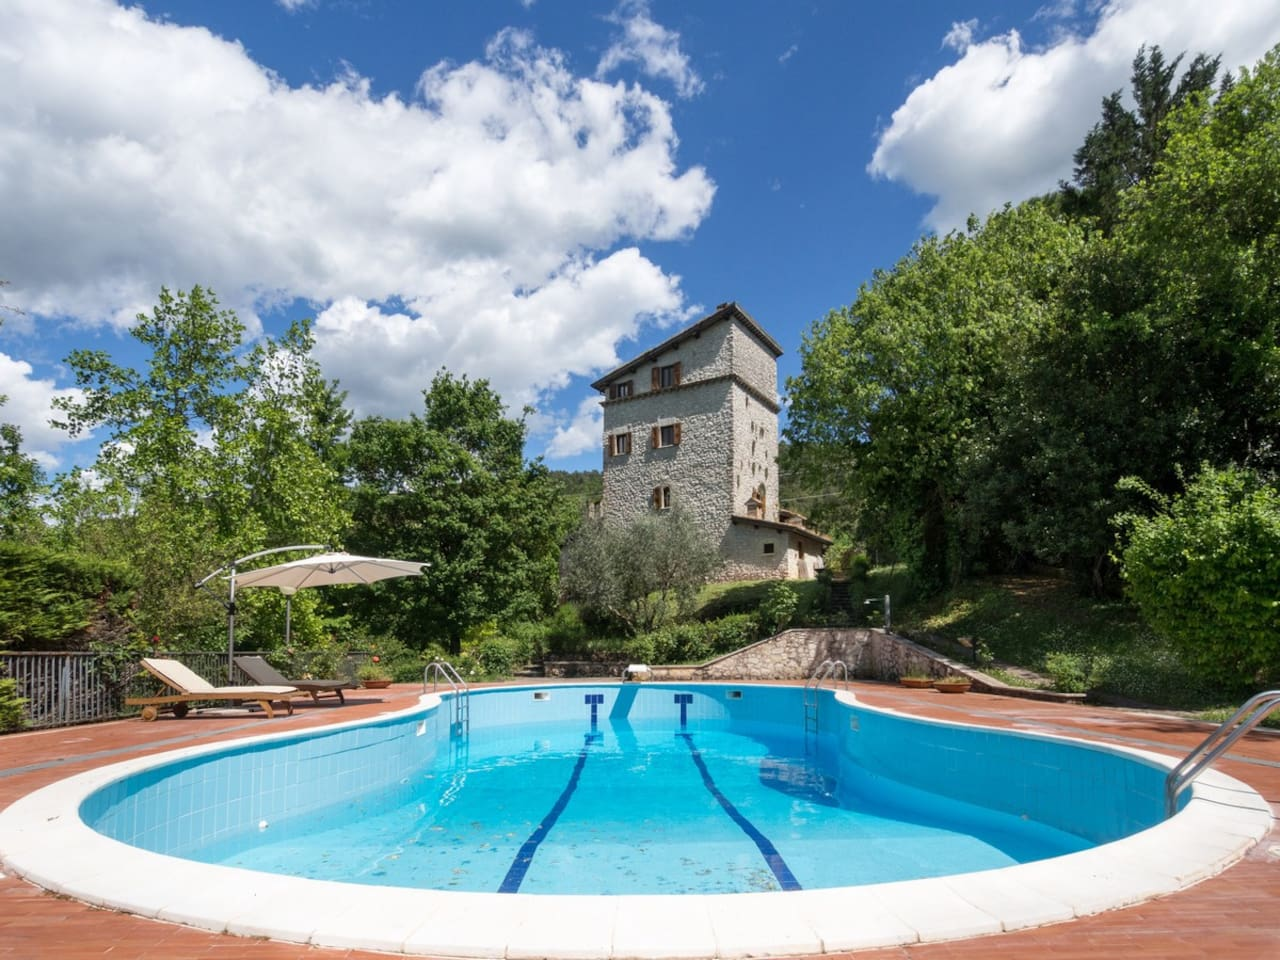 Perfect family holiday villa with private pool, sportfield, wine cellar, BBQ, outdoor pizza oven, terrace and big surrounding rose garden